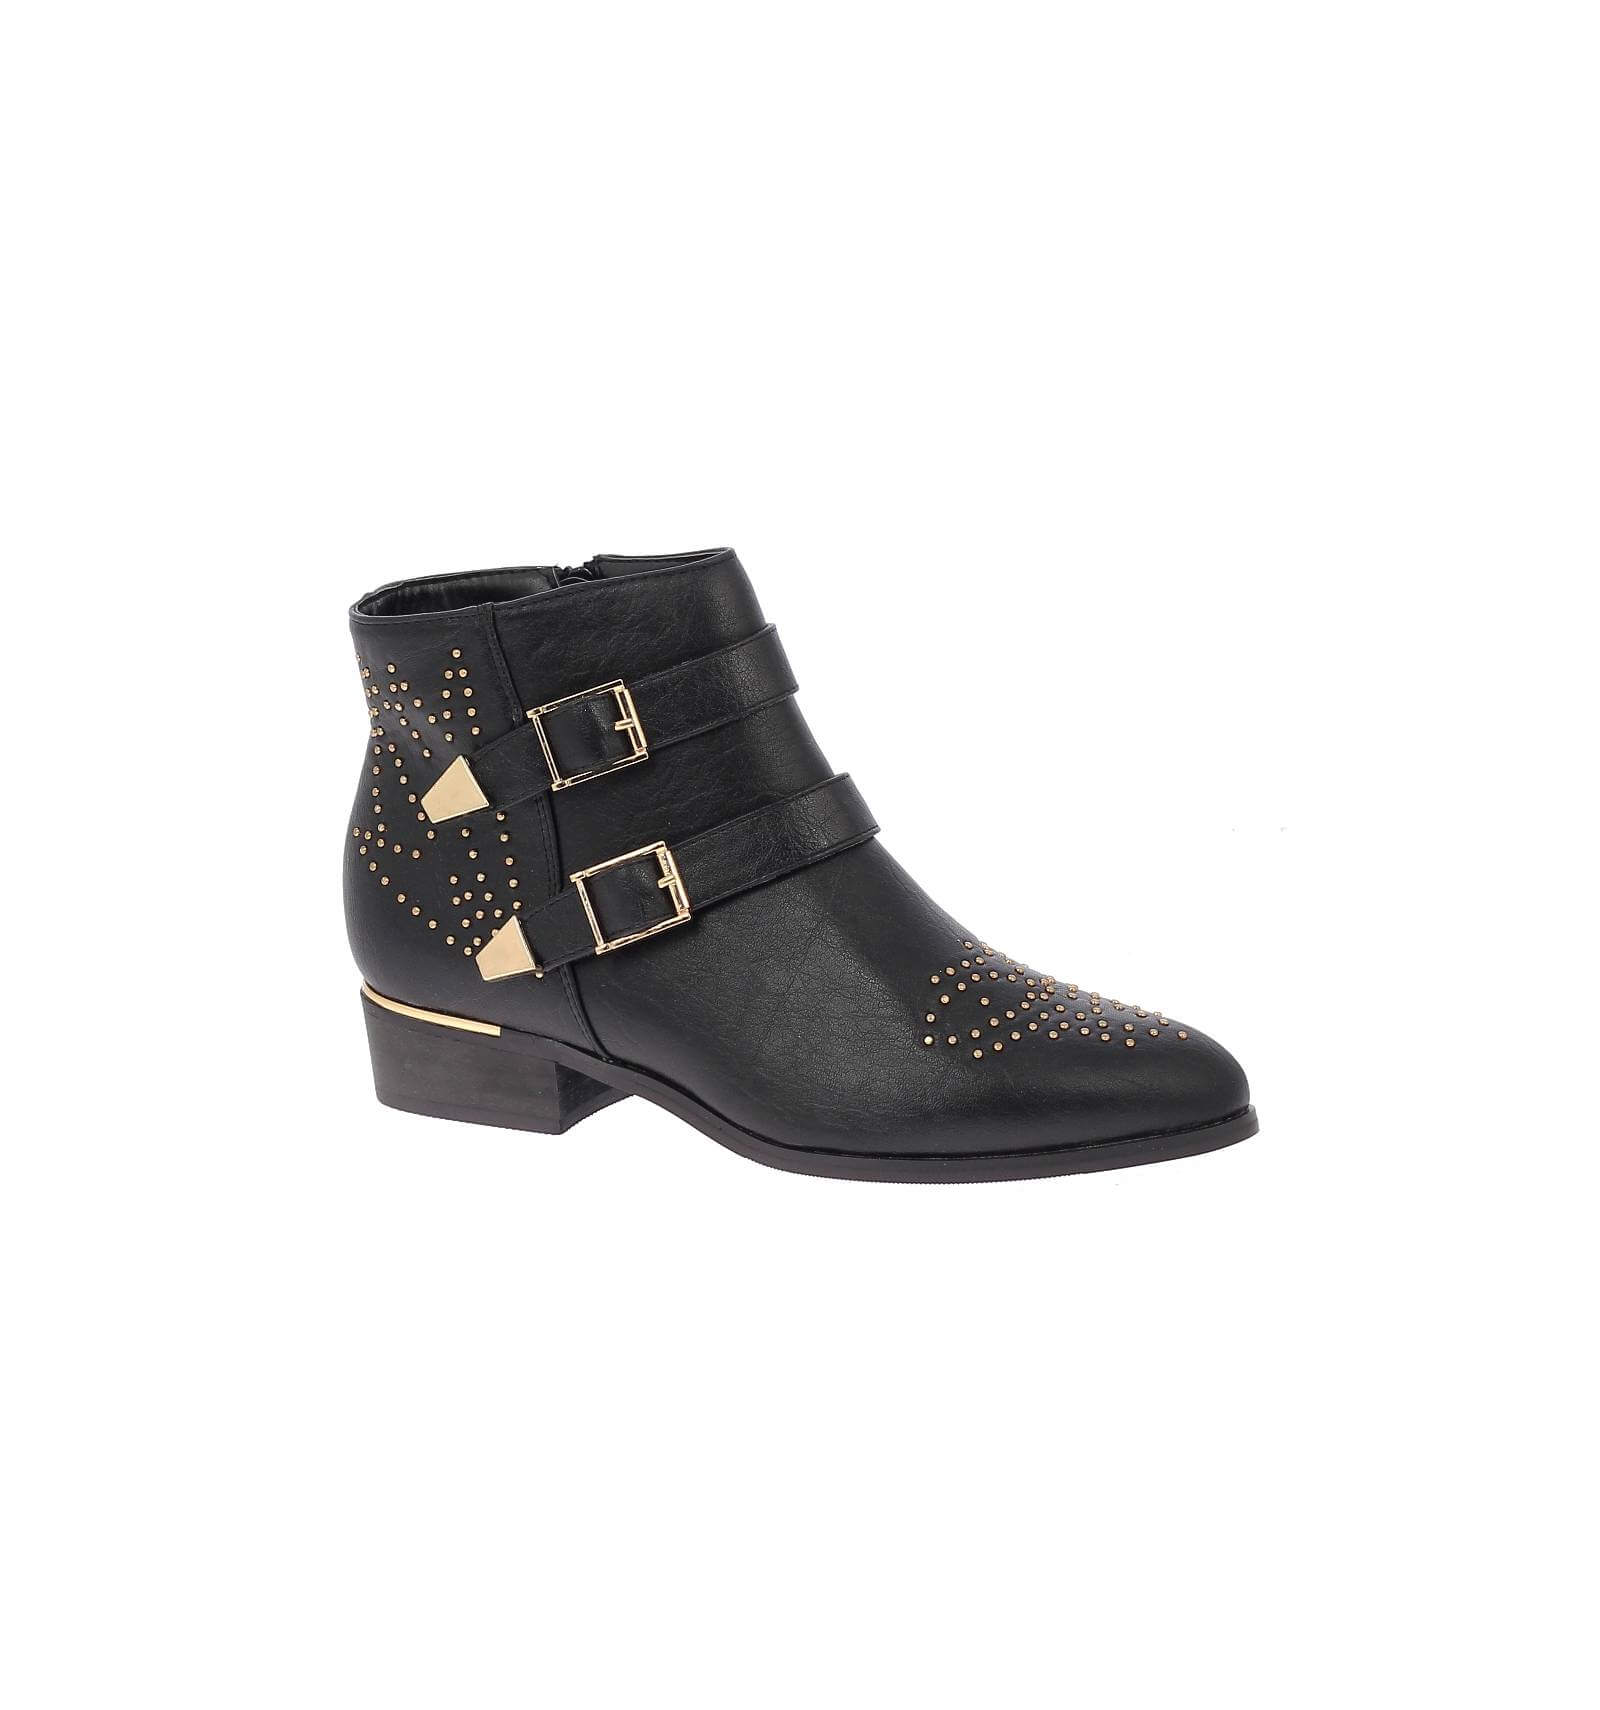 chaussures bottines femmes simili cuir noir rivets et brides avec boucles et clous dor s bea. Black Bedroom Furniture Sets. Home Design Ideas